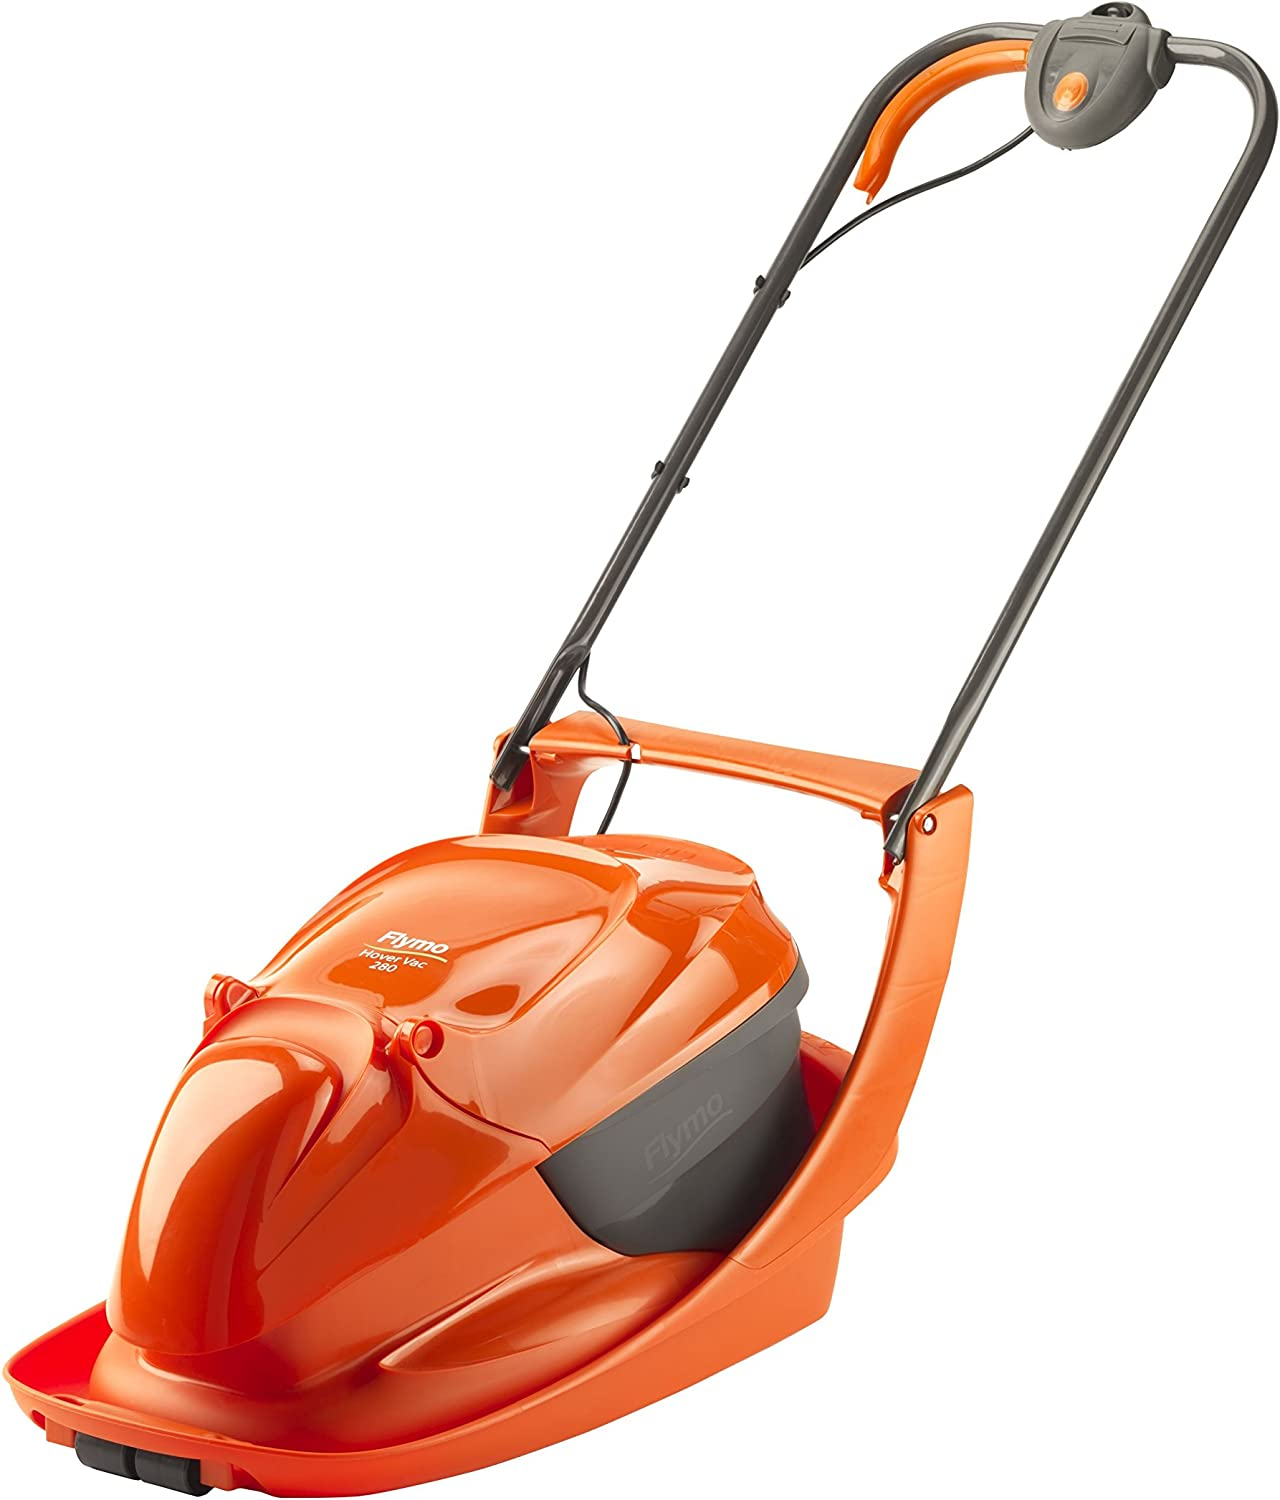 Flymo Hover Vac 280 Electric Hover Collect image 1